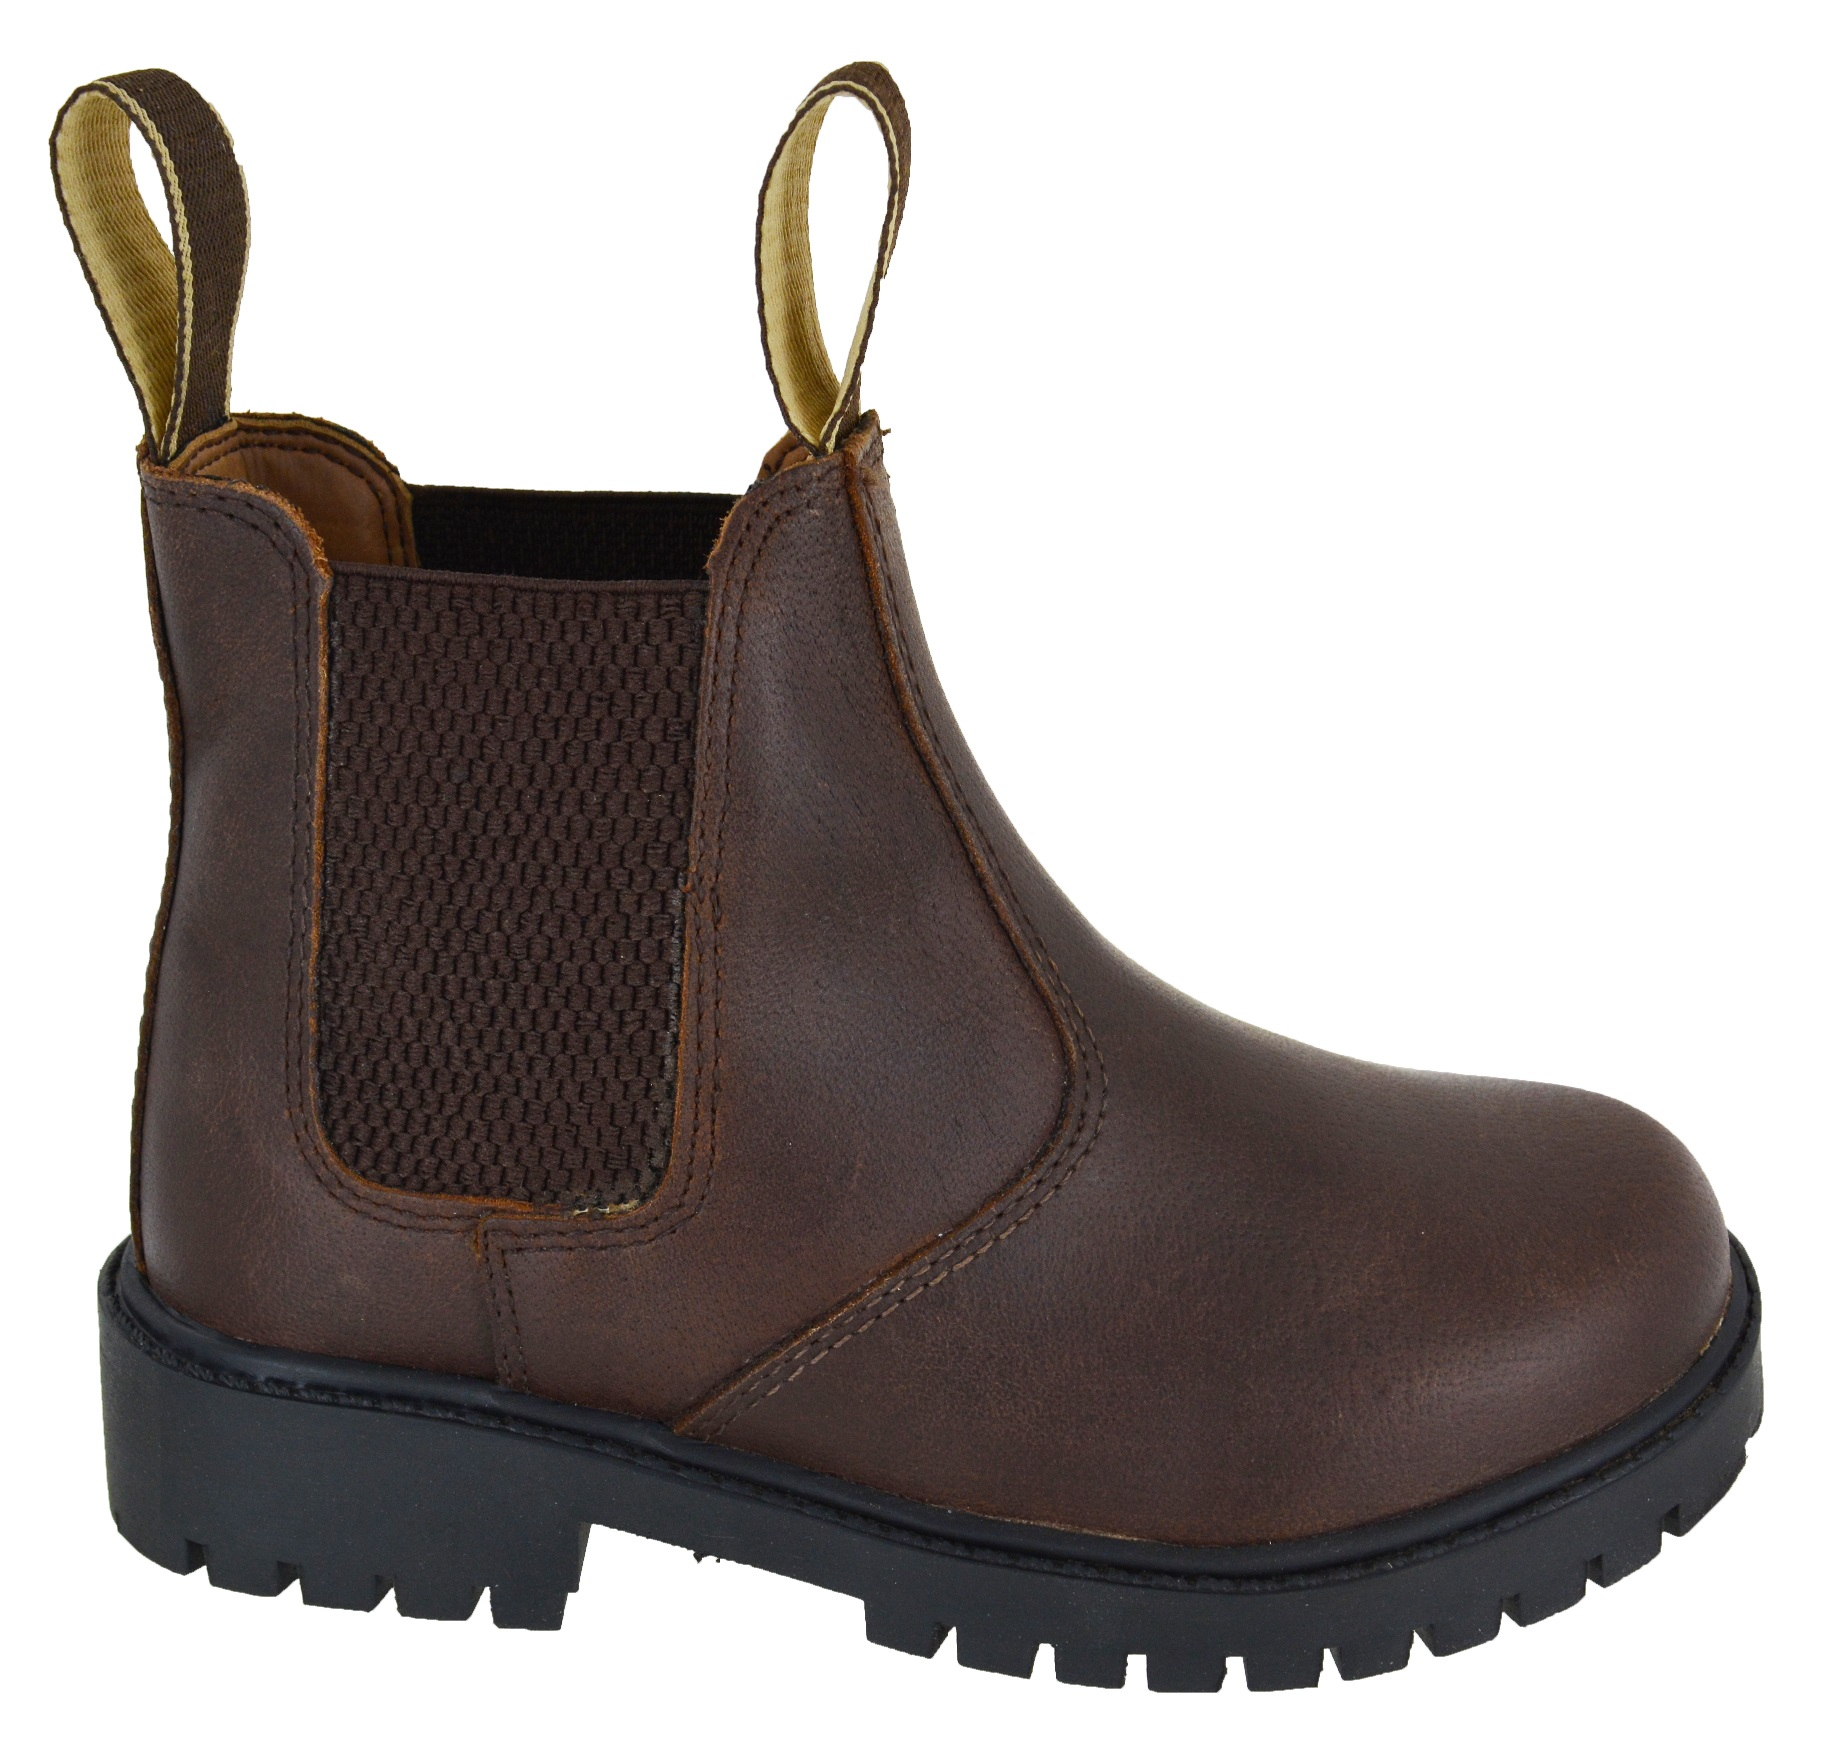 GIRLS BOYS KIDS CHILDREAN LEATHER UPPER DEALER ANKLE BOOTS CHELSEA WORK SHOES SZ